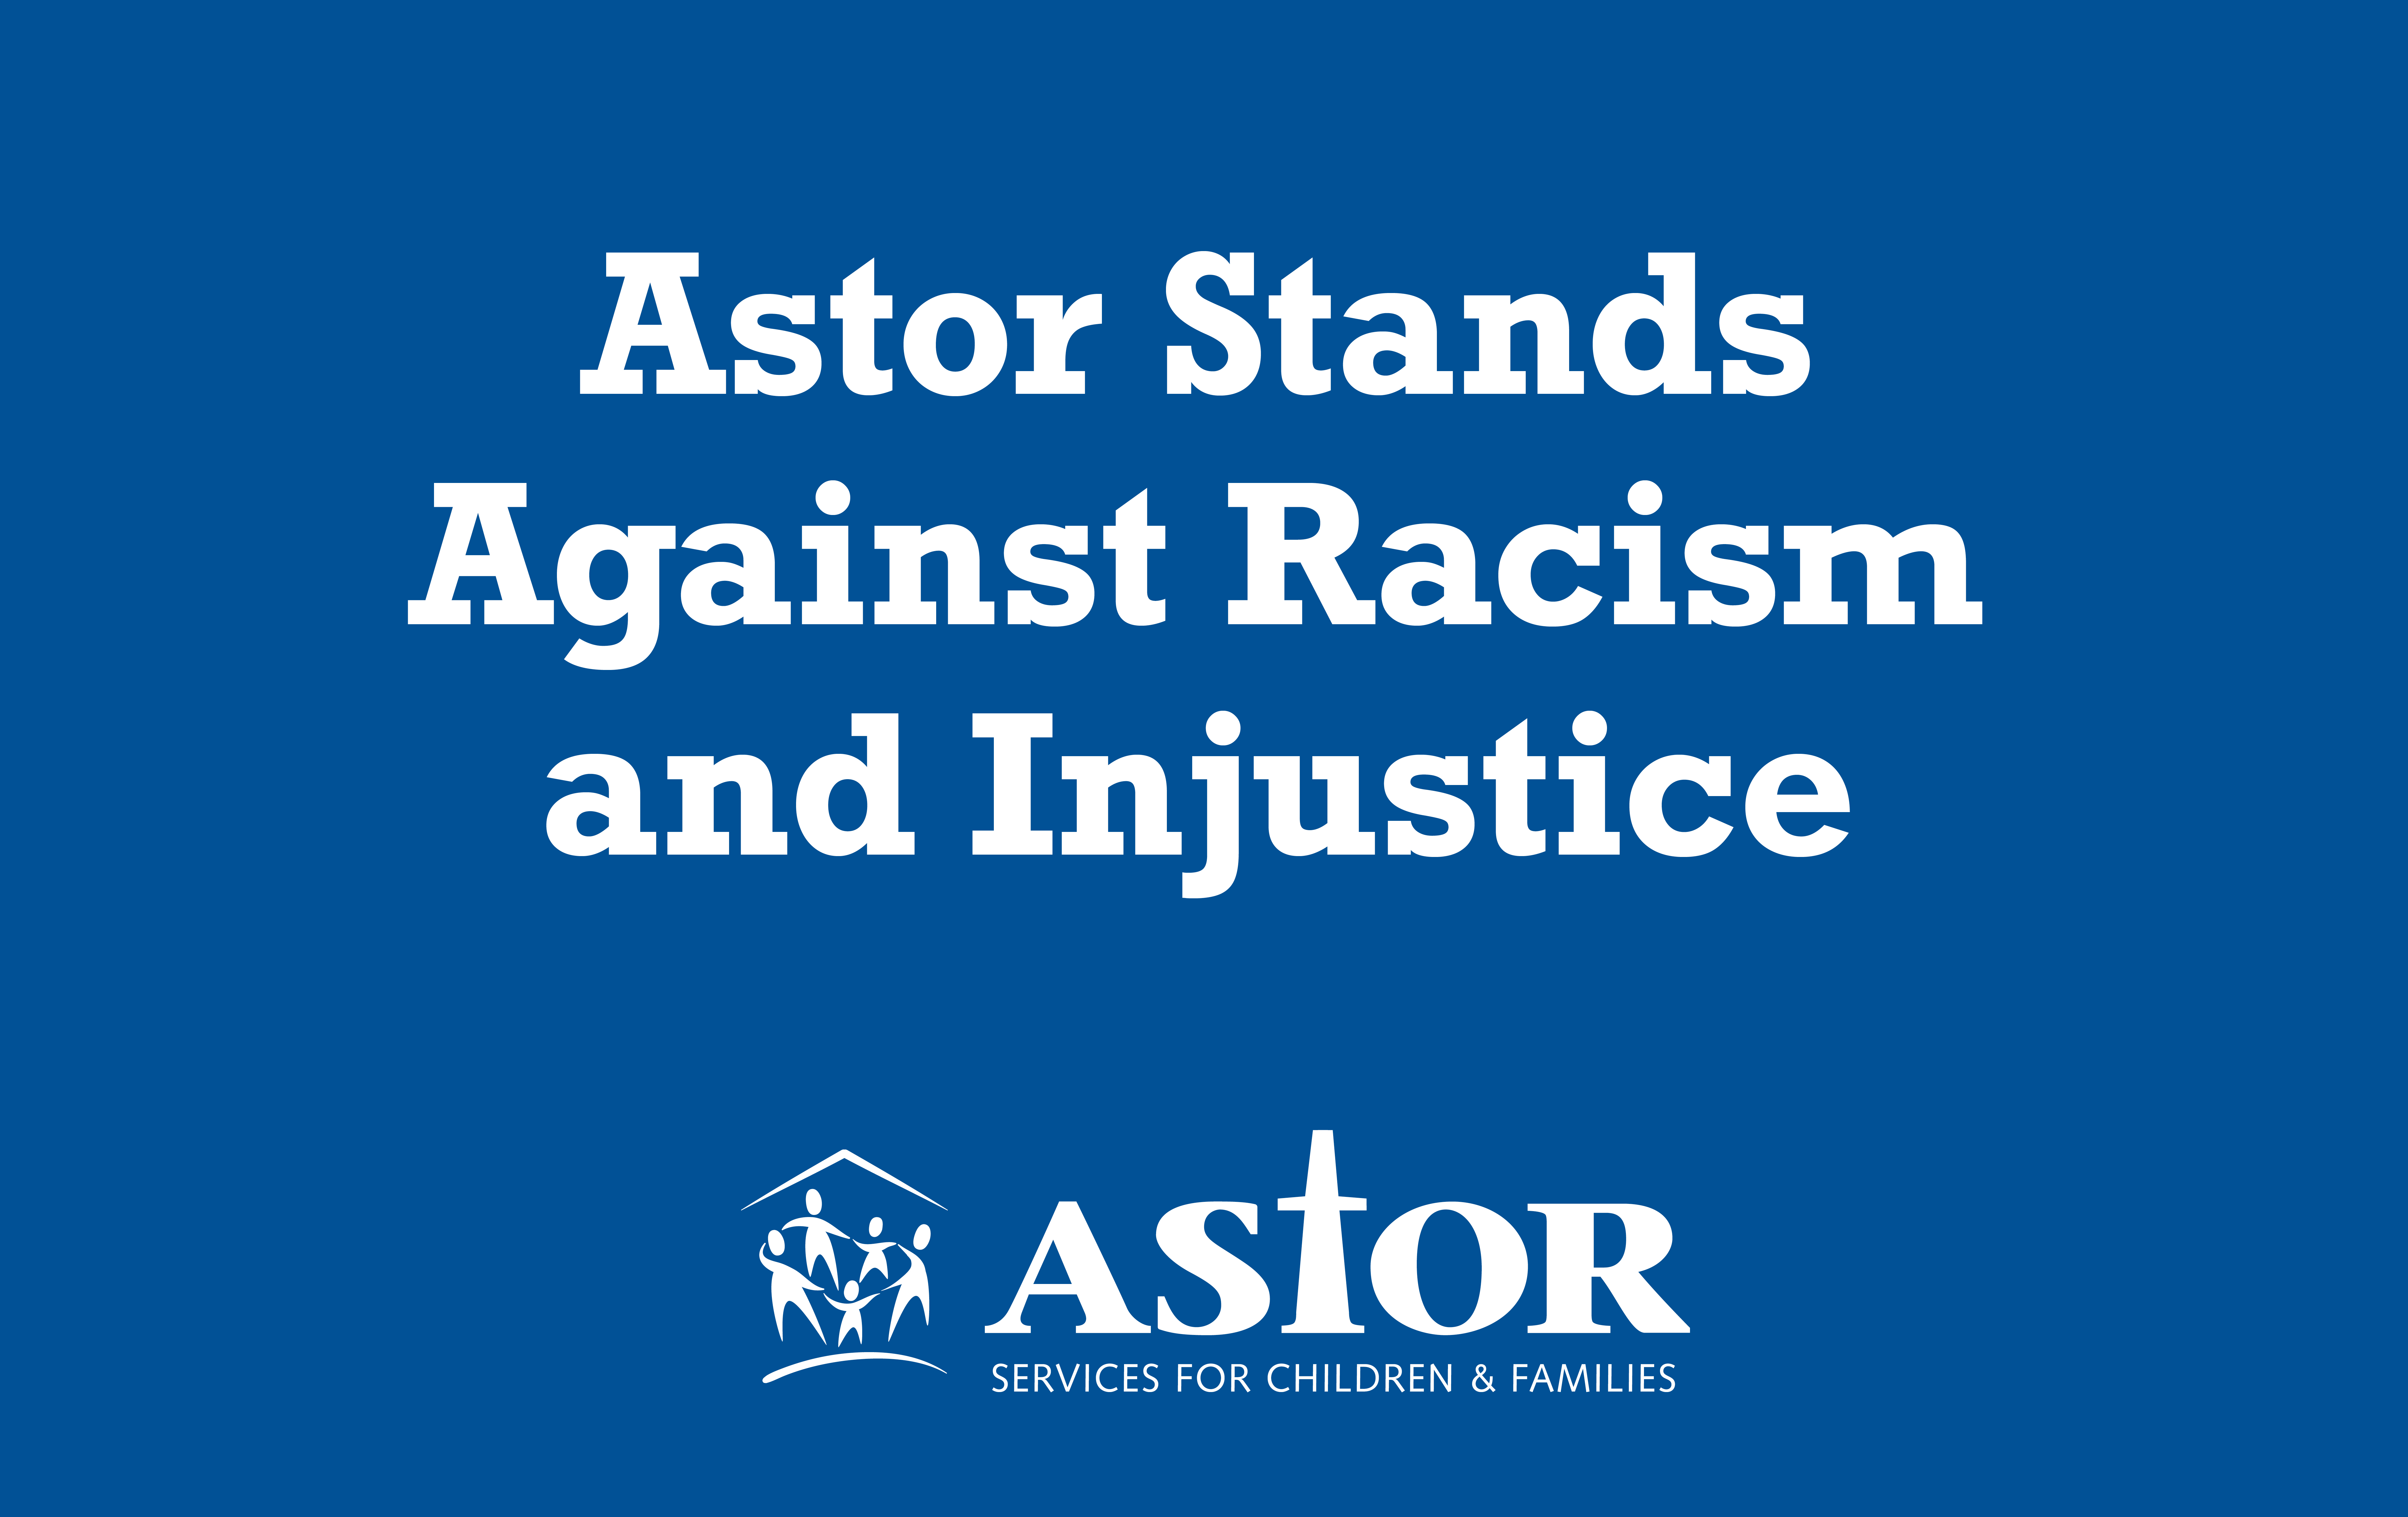 Astor Stands Against Racism